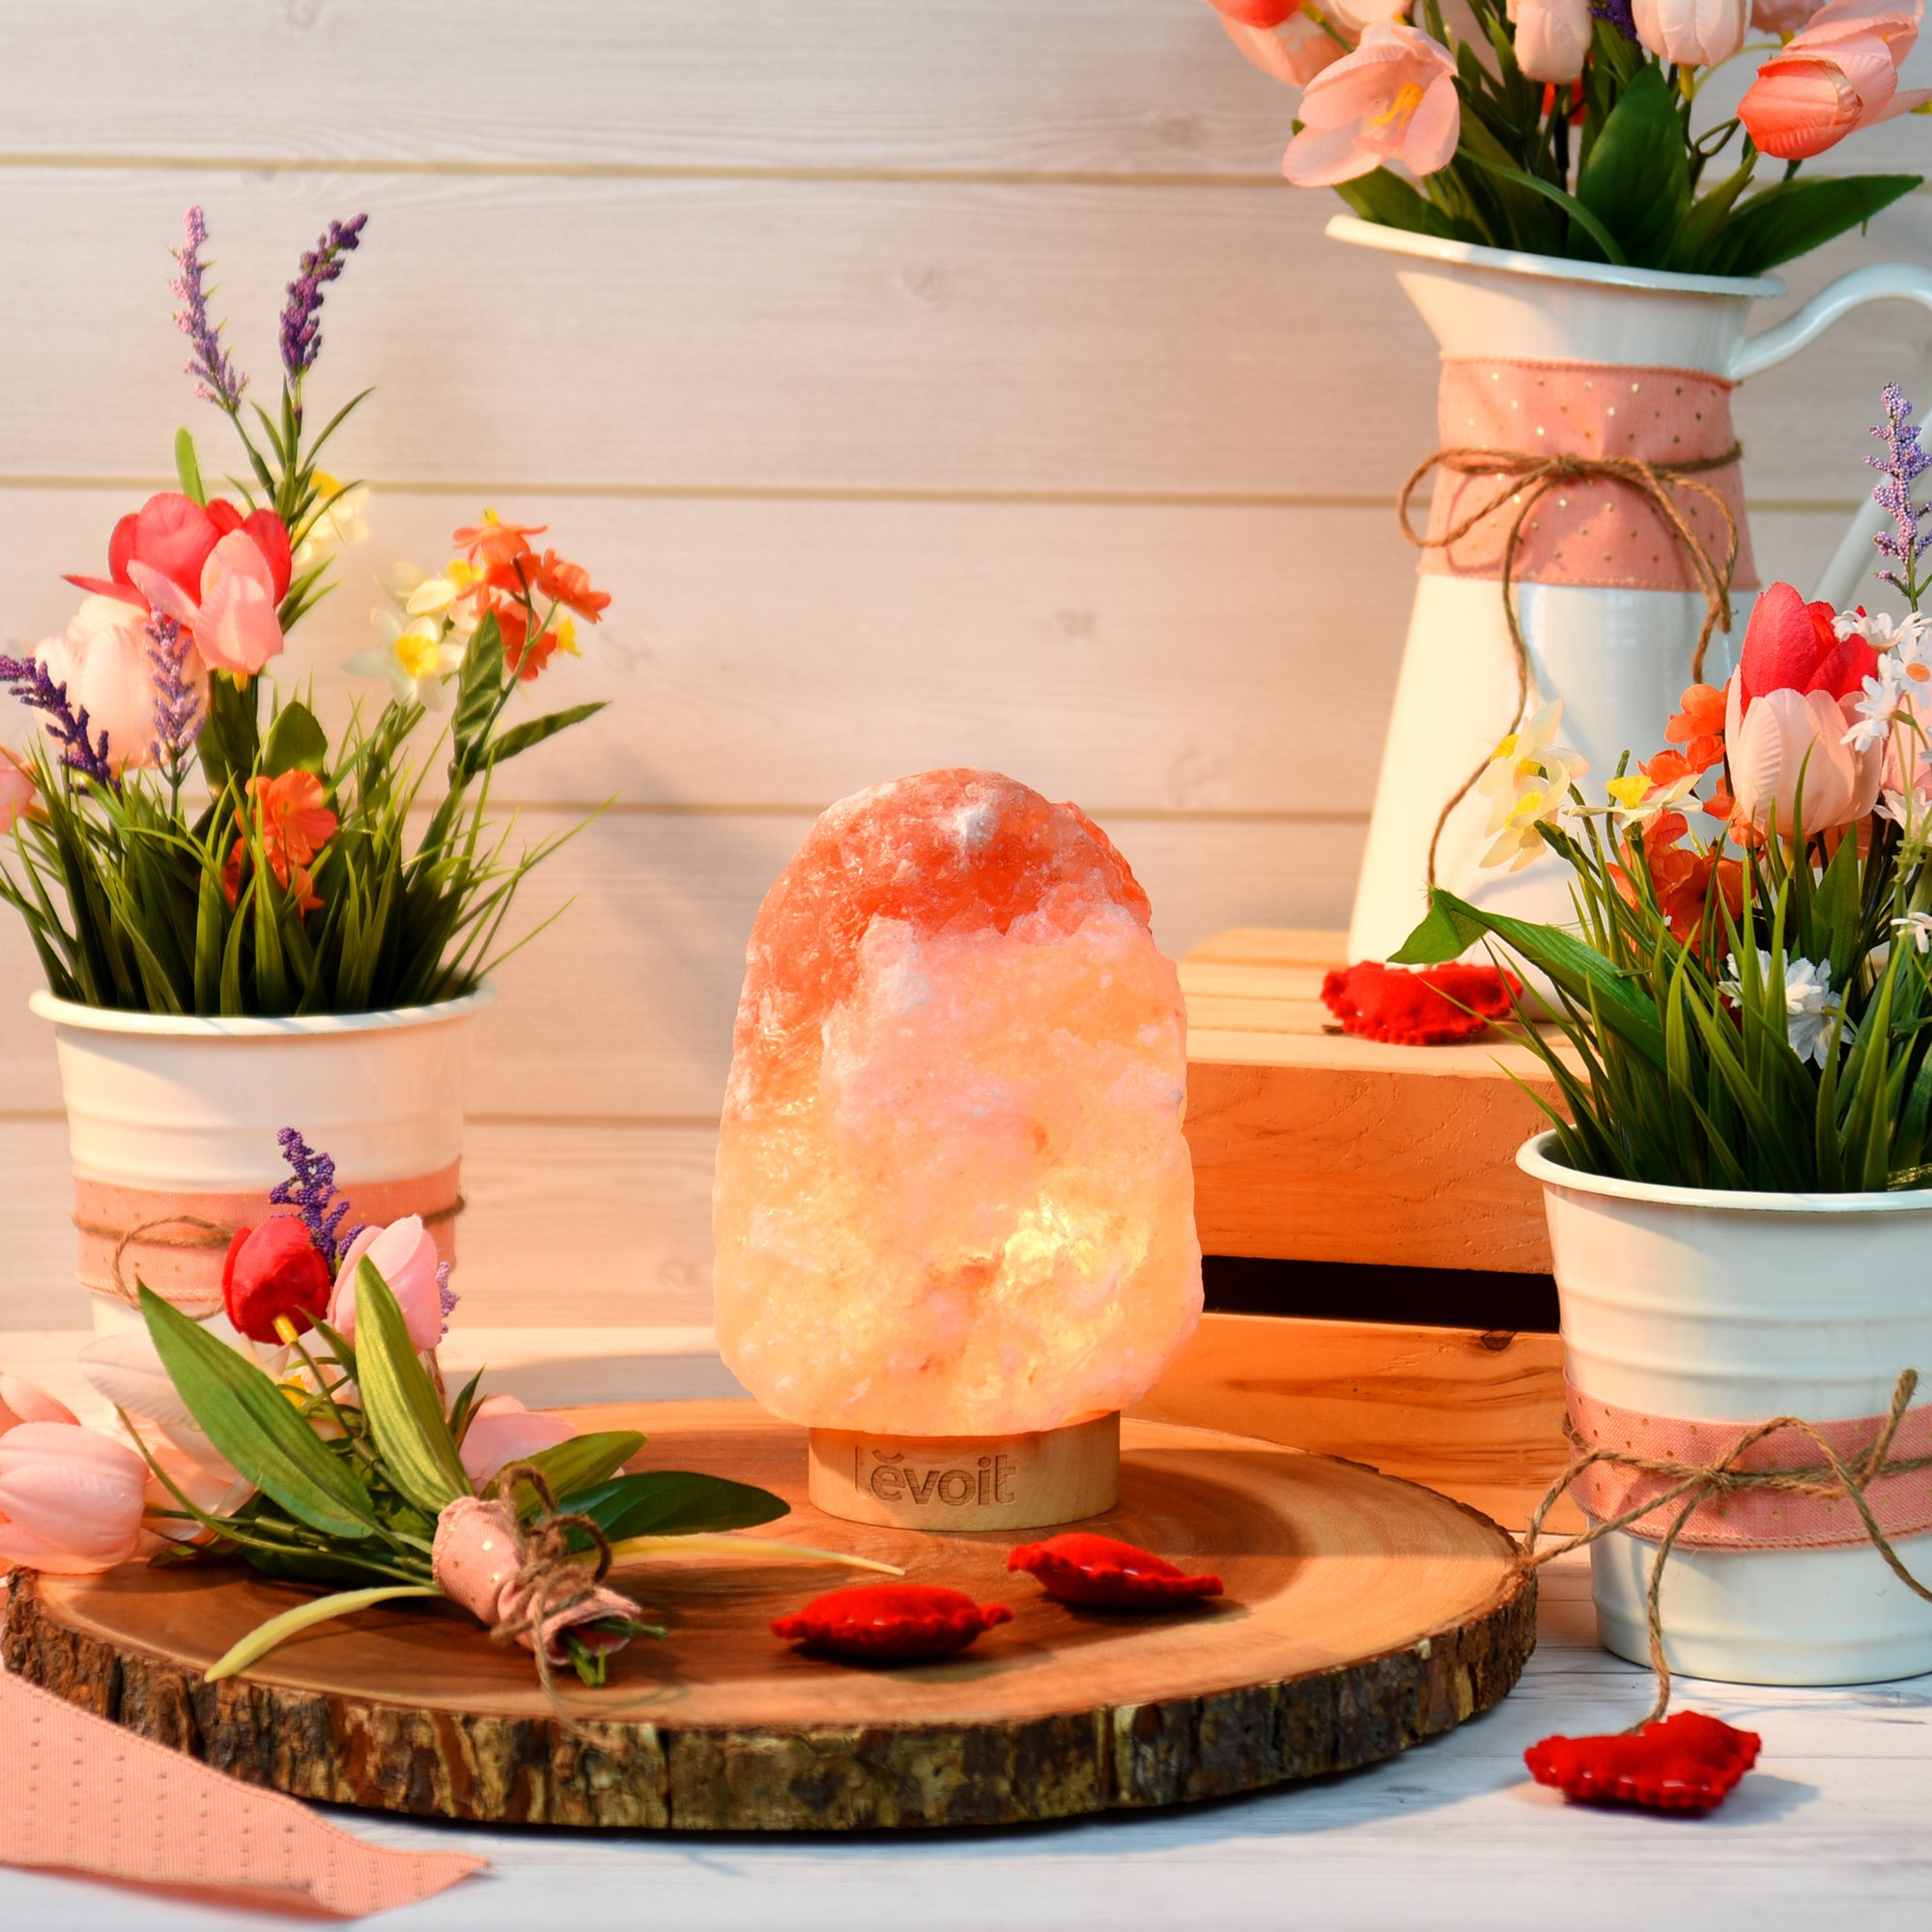 Levoit Kana Himalayan/Hymilain Sea, Pink Crystal Salt Rock Lamp, Night Light, Real Rubber Wood Base, Dimmable Touch Switch, Holiday Gift (ETL Certified, 2 Extra Bulbs), by LEVOIT (Image #6)